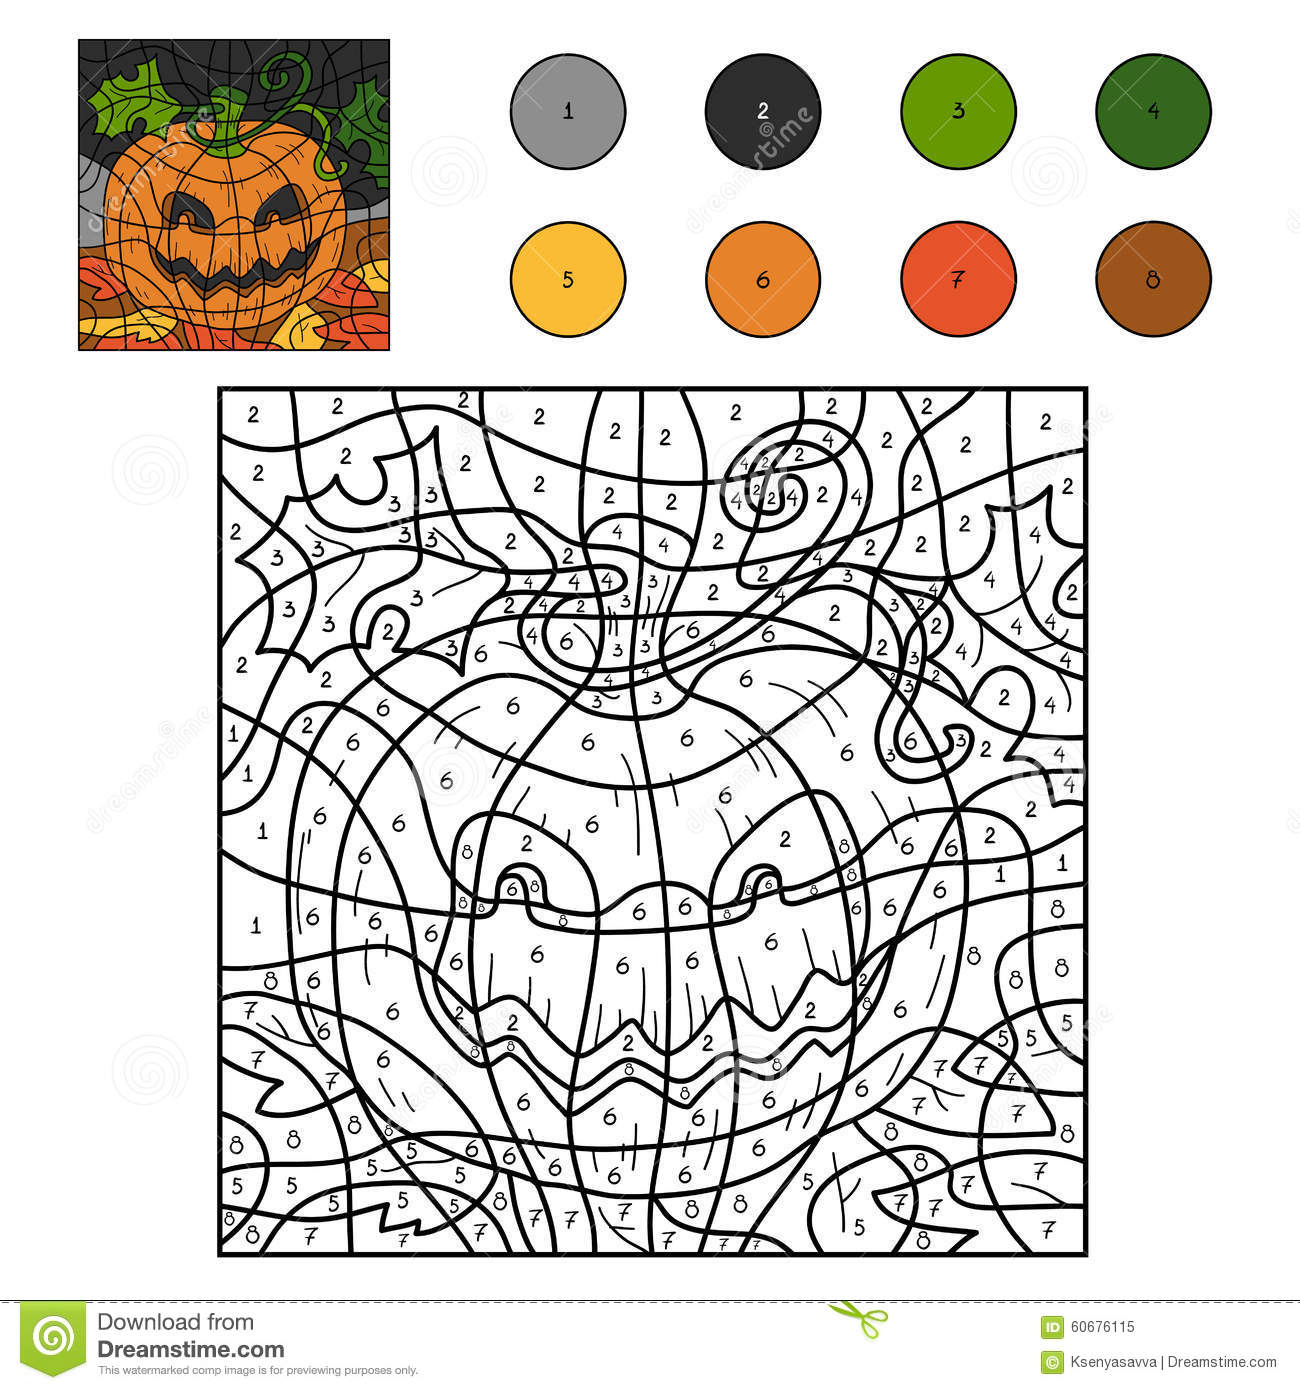 color by numbers halloween pumpkin - Halloween Color By Numbers